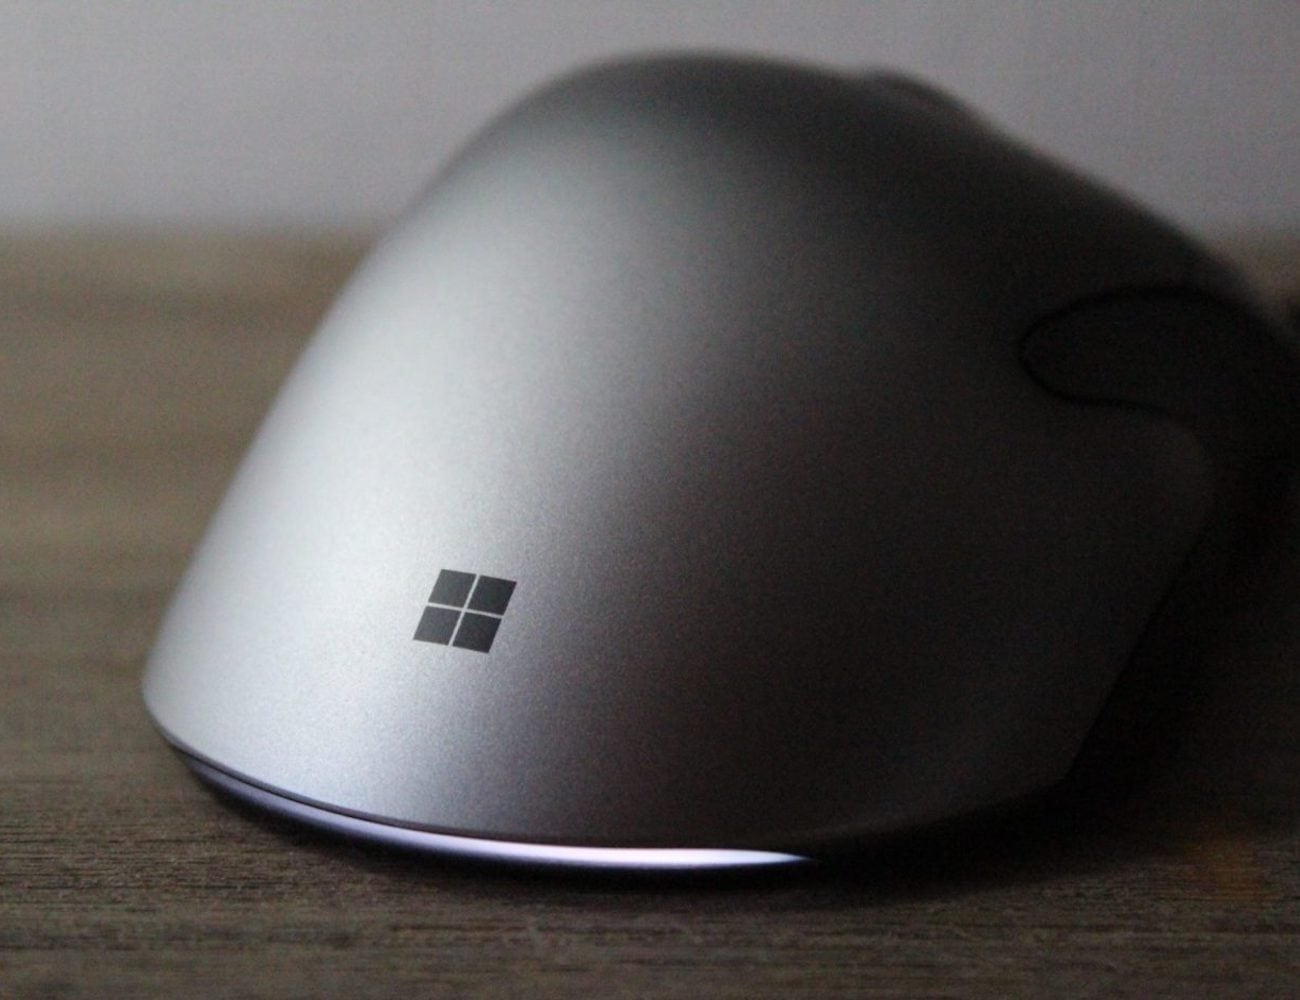 The best new tech revealed at Computex 2019 - Microsoft Pro IntelliMouse 03